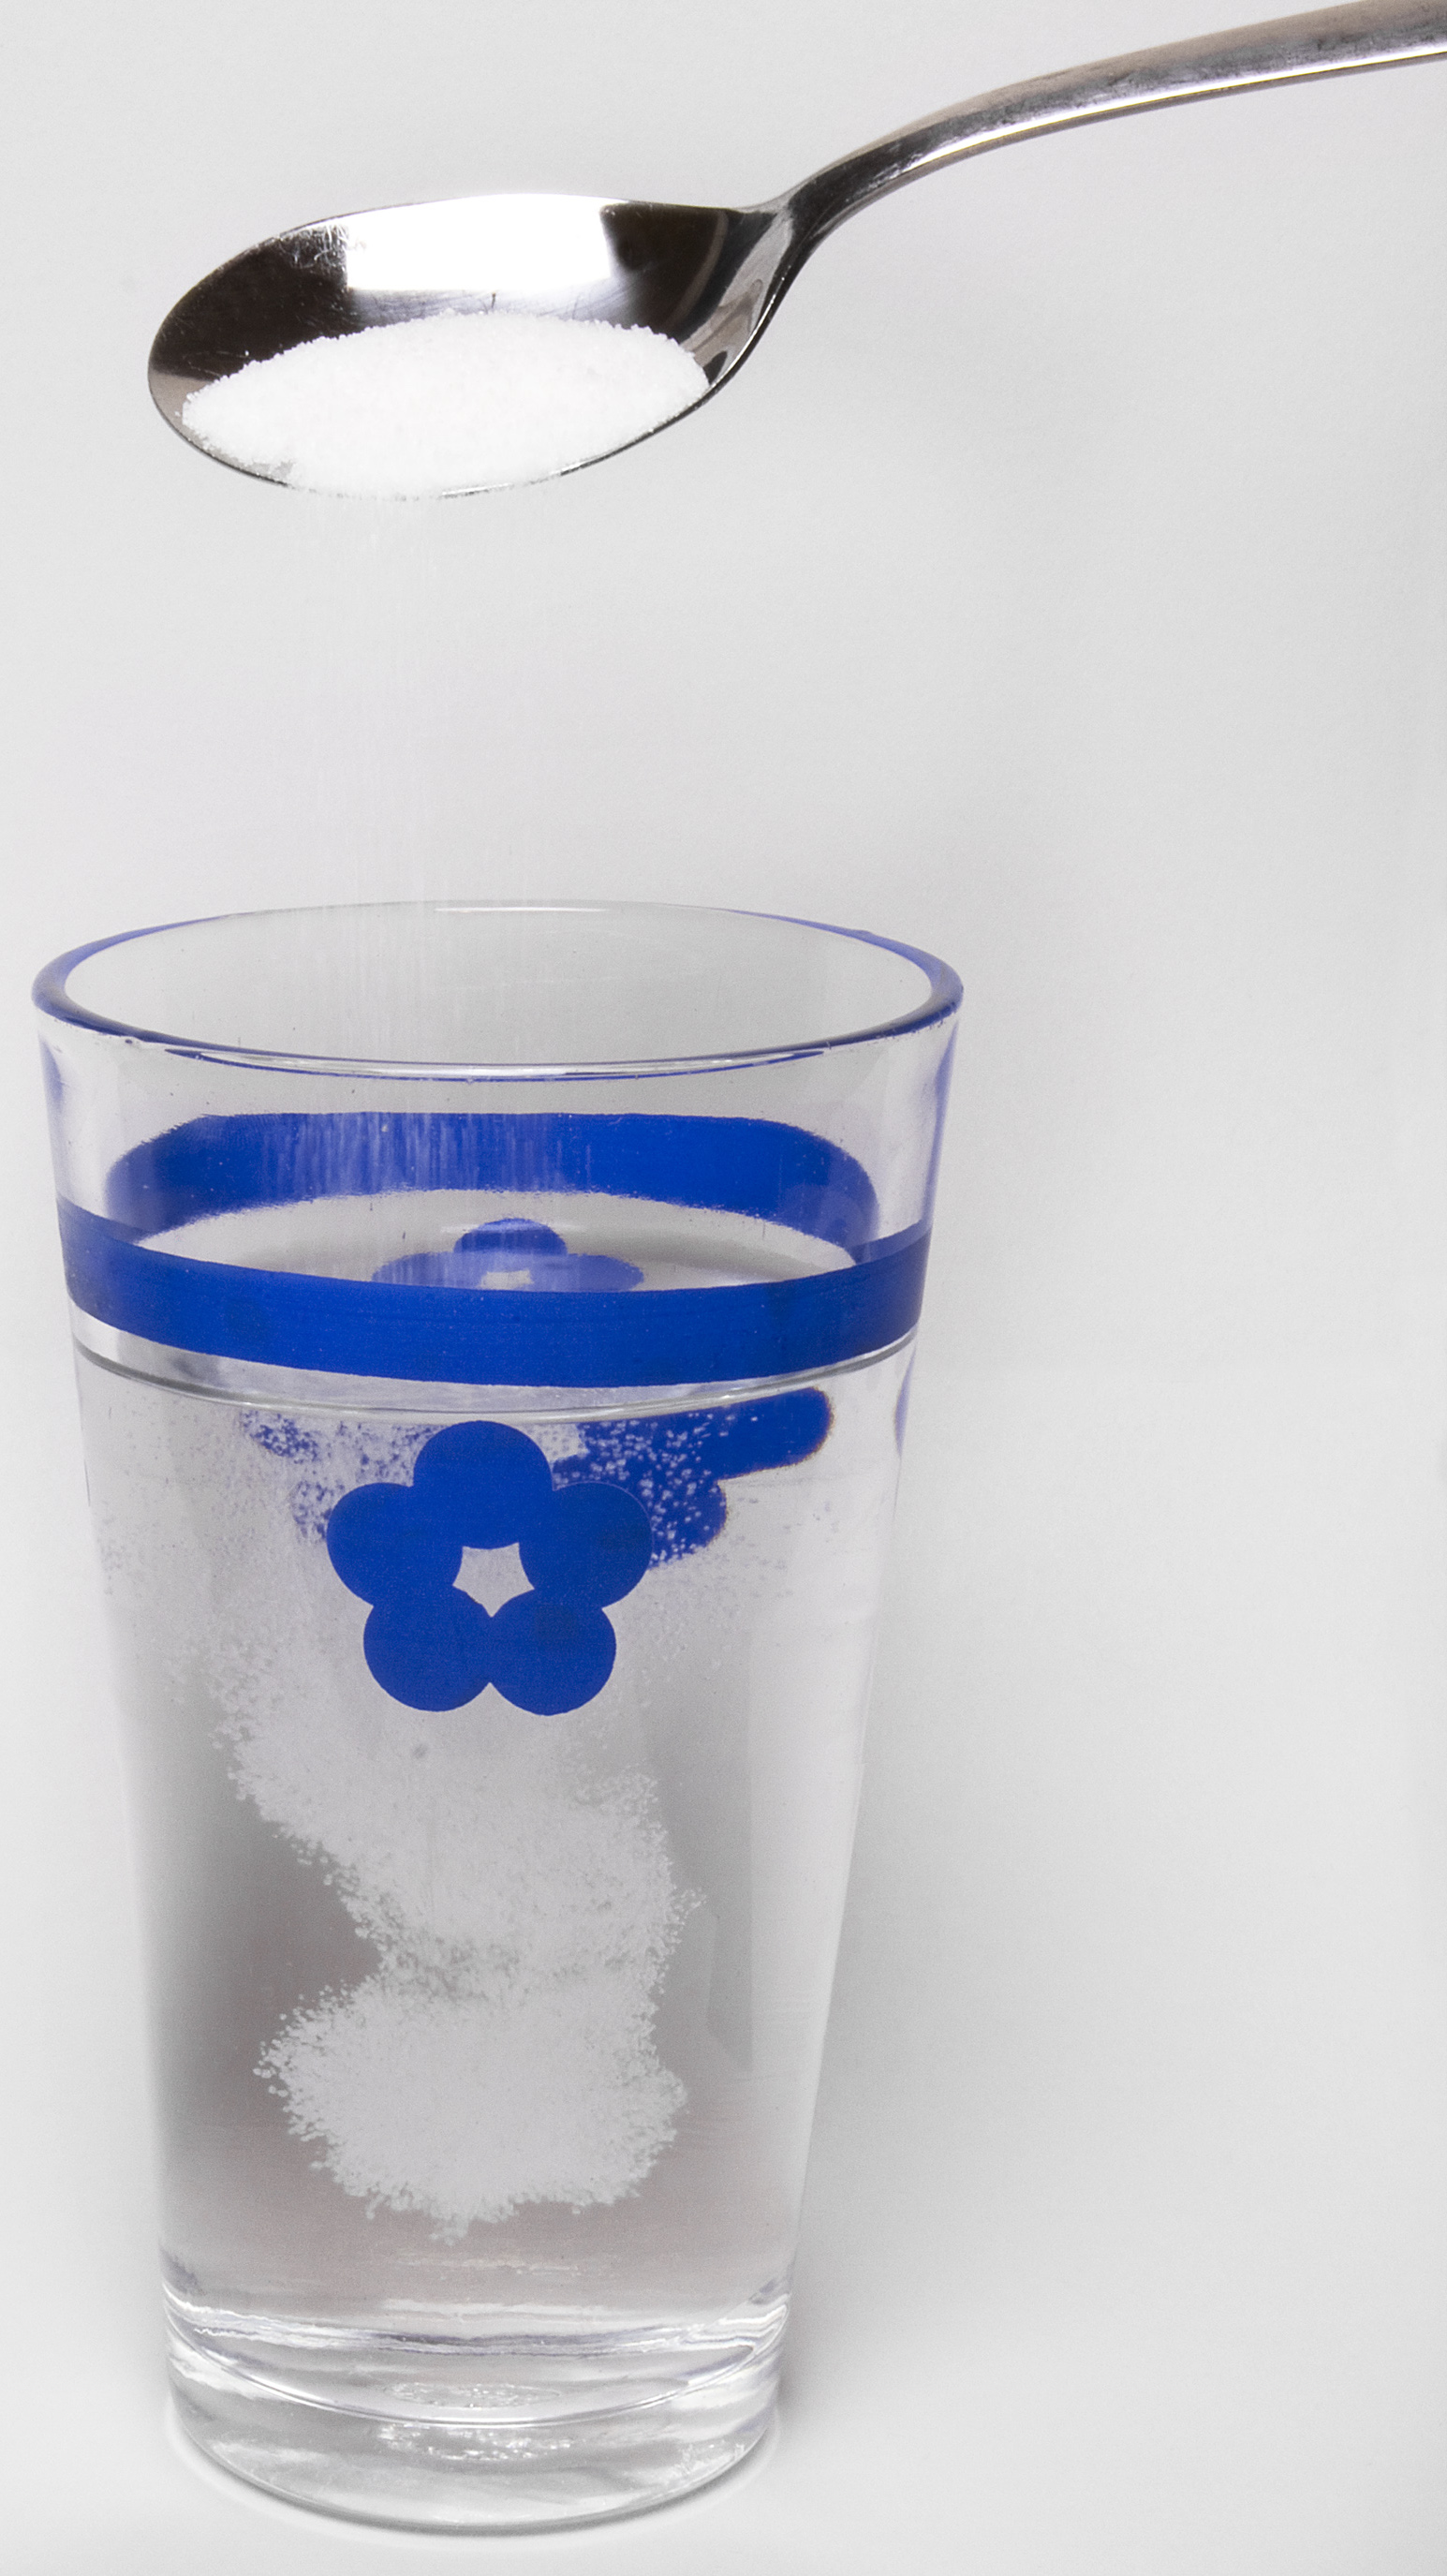 03_Spoon_Sugar_Solution_with_Glass